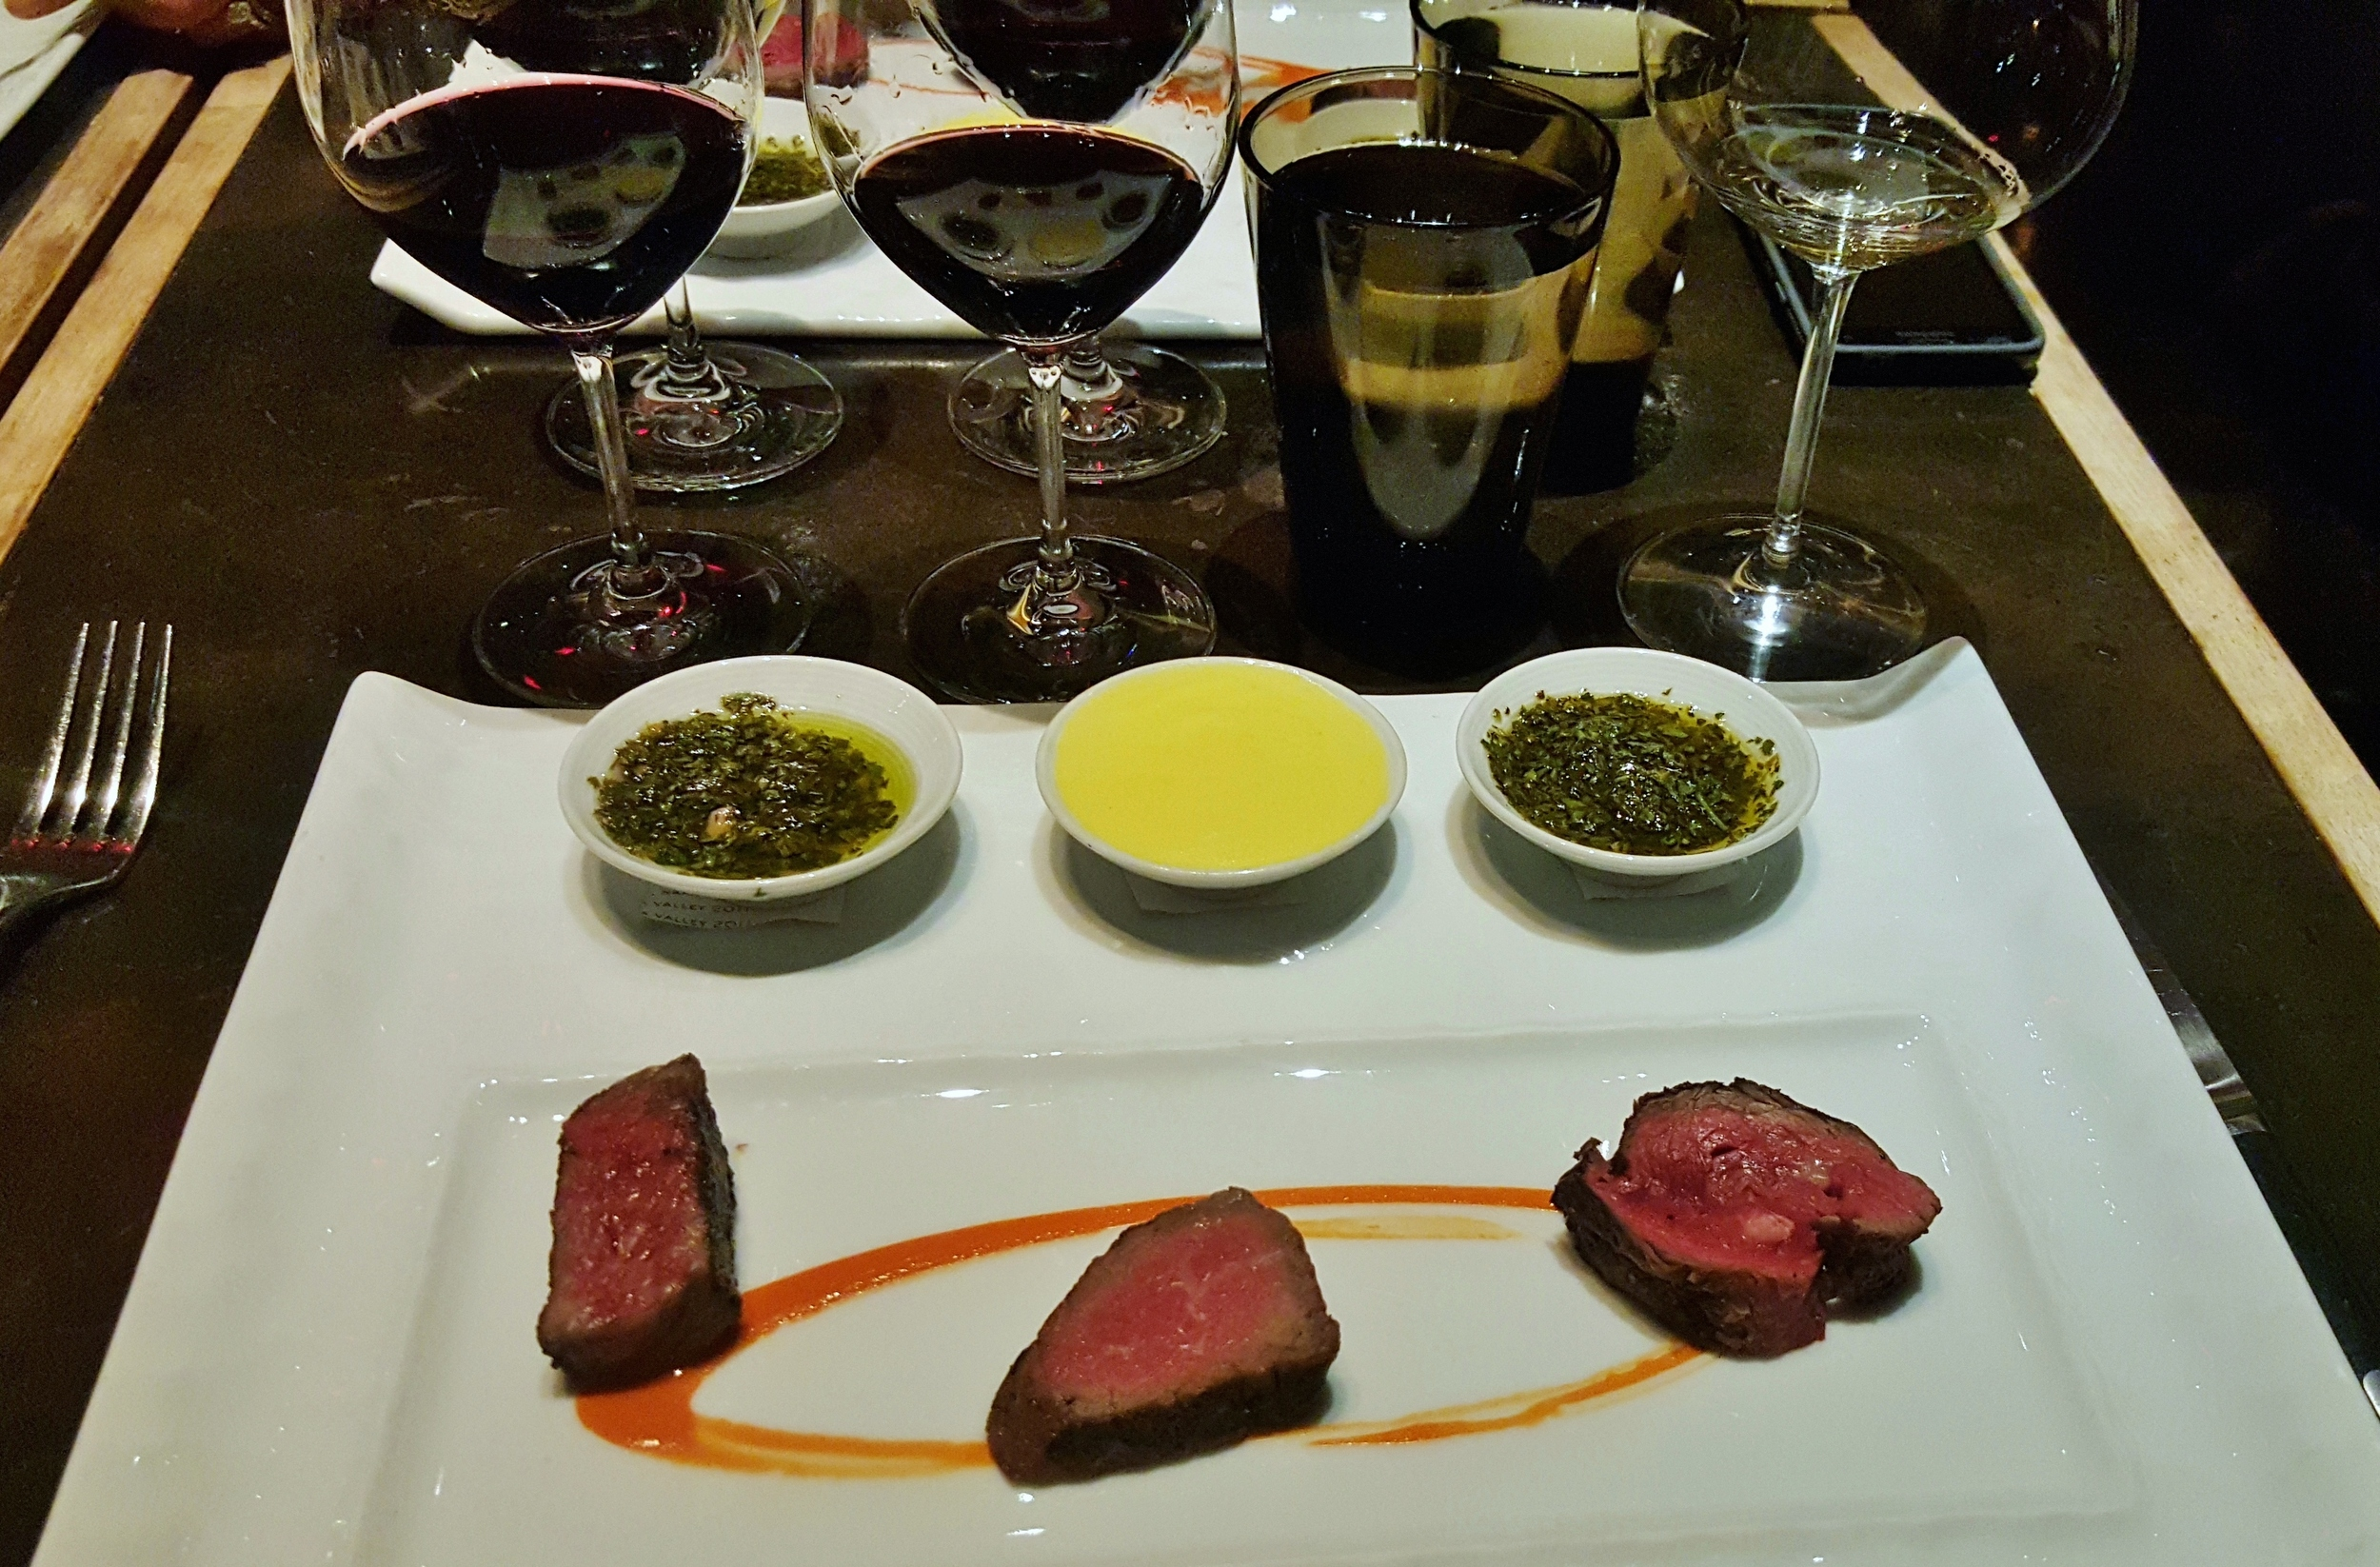 Beef trio: Wagyu A5, USDA prime, and sirloin cap. With chimichurri, bearnaise, and salsa verde.